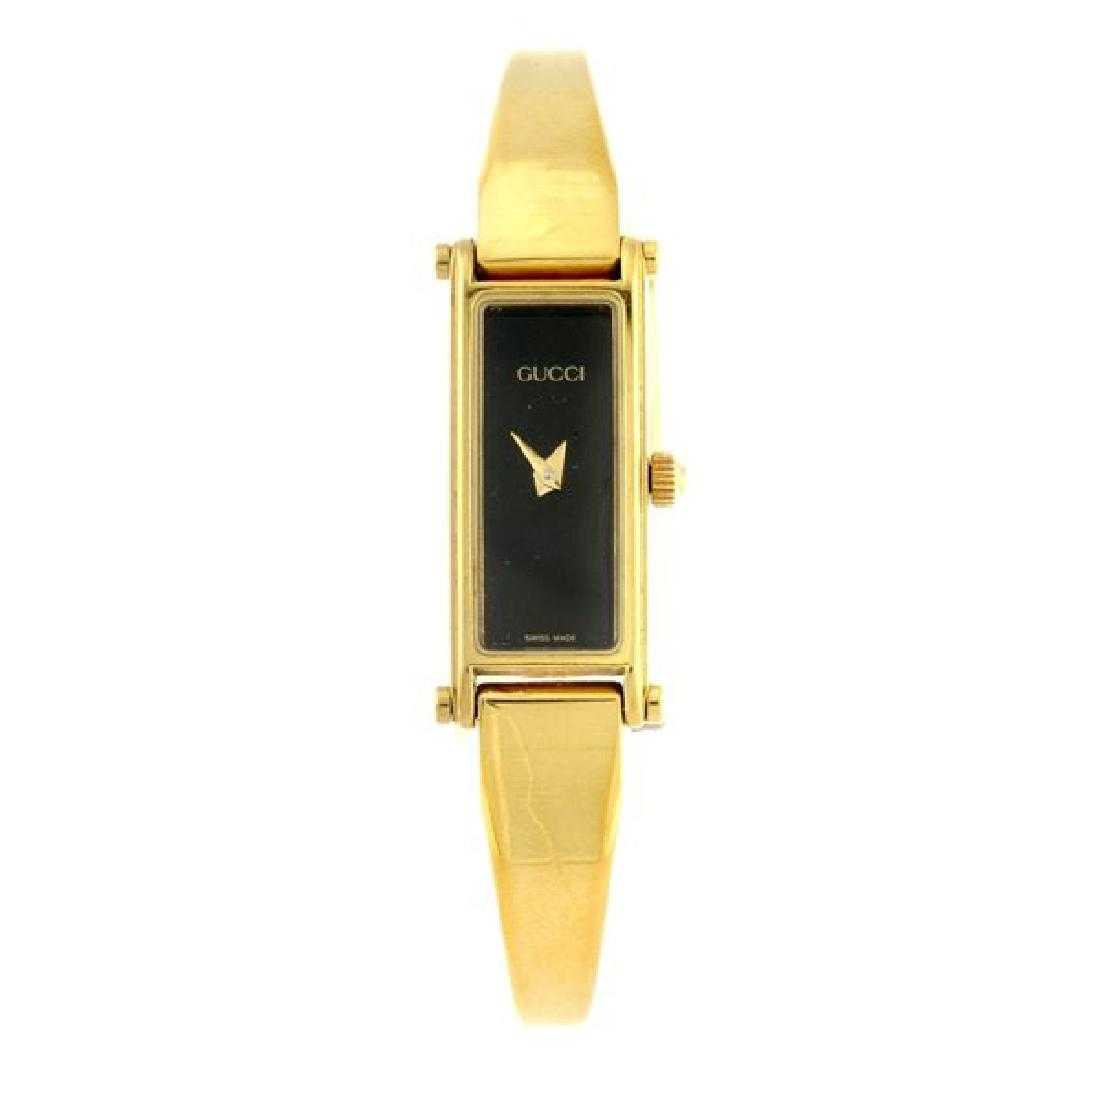 6e9e726e0c1 A Lady`s Gucci 1500l gold plated watch